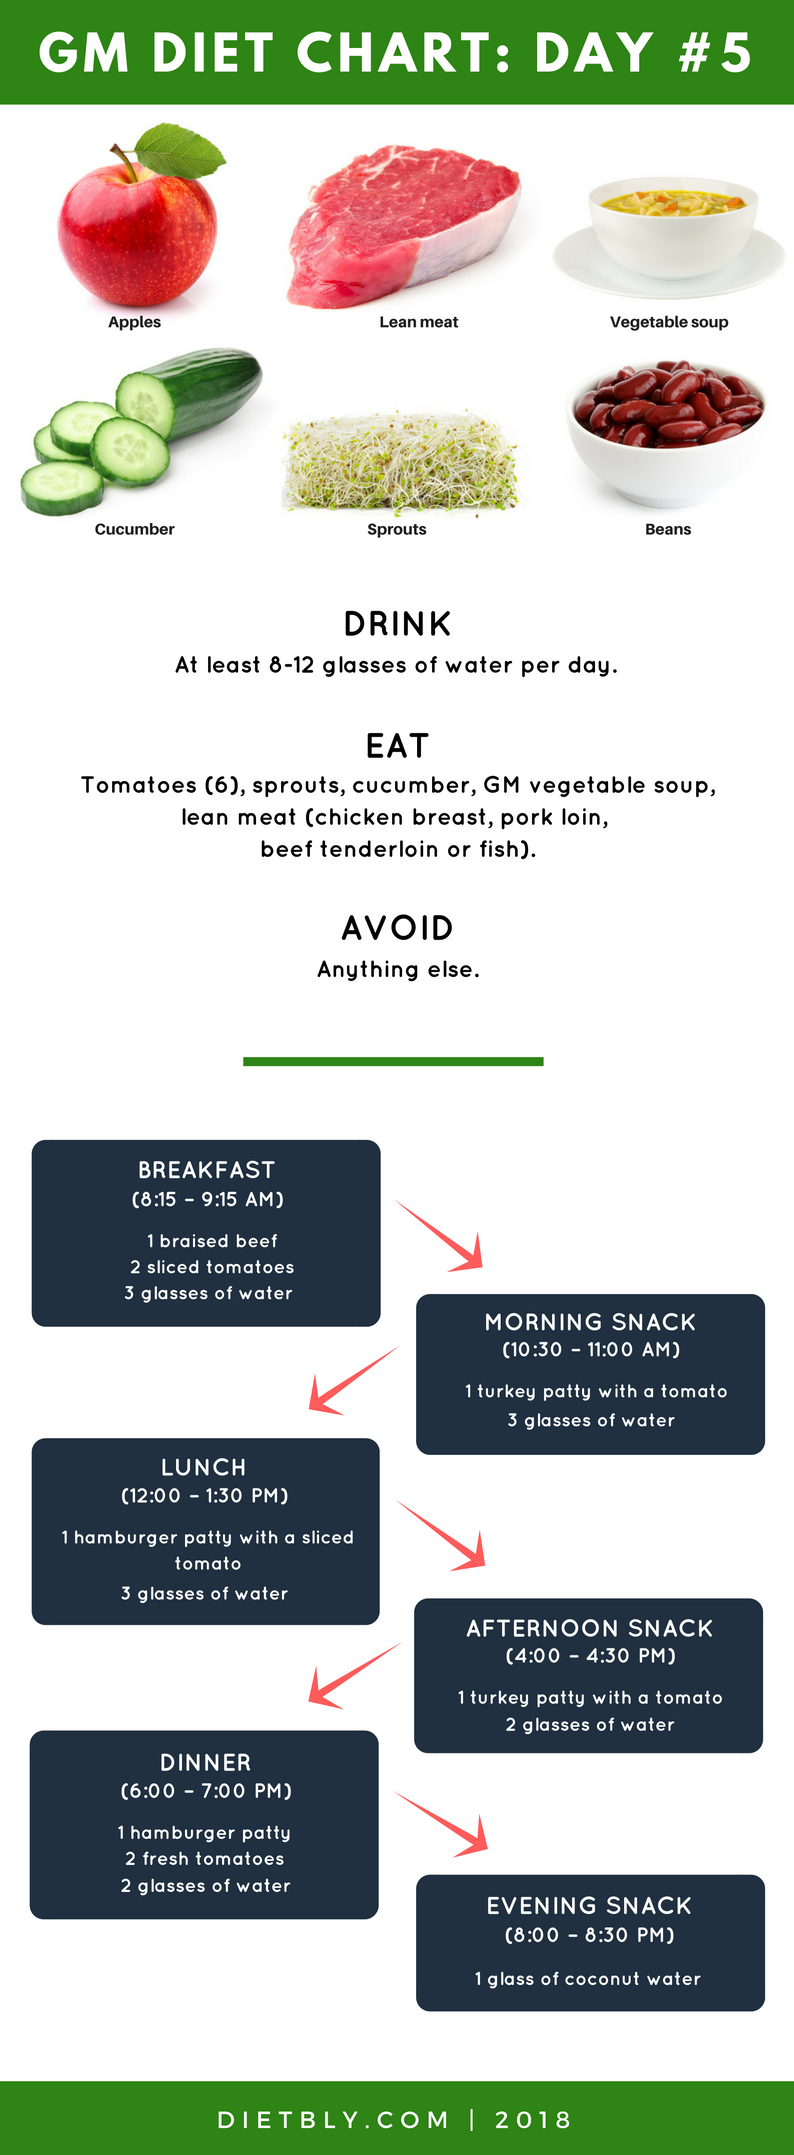 gm diet chart day 5